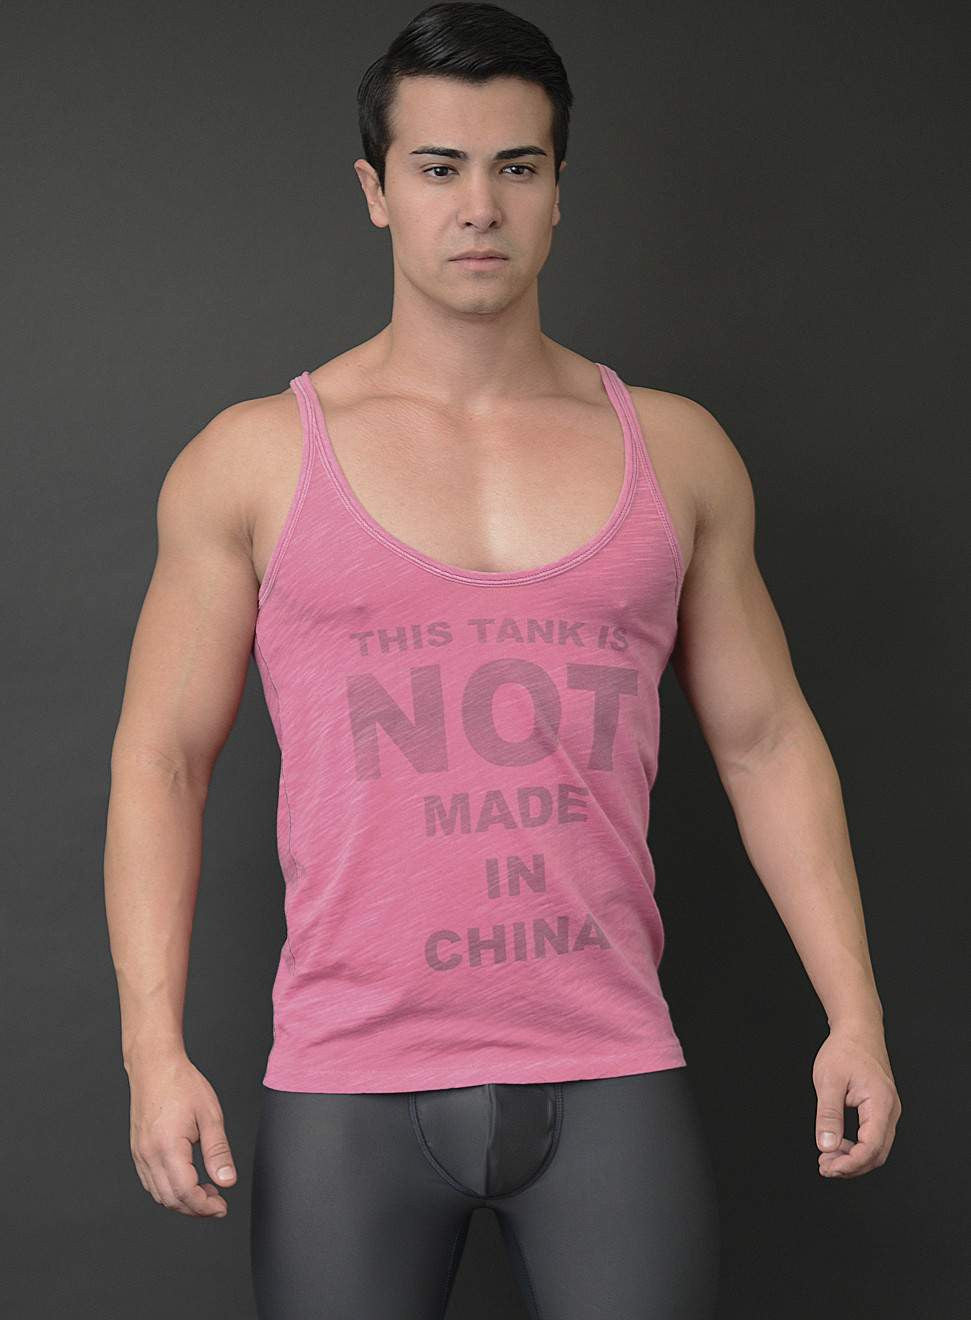 JESSE NOT MADE IN CHINA TANK